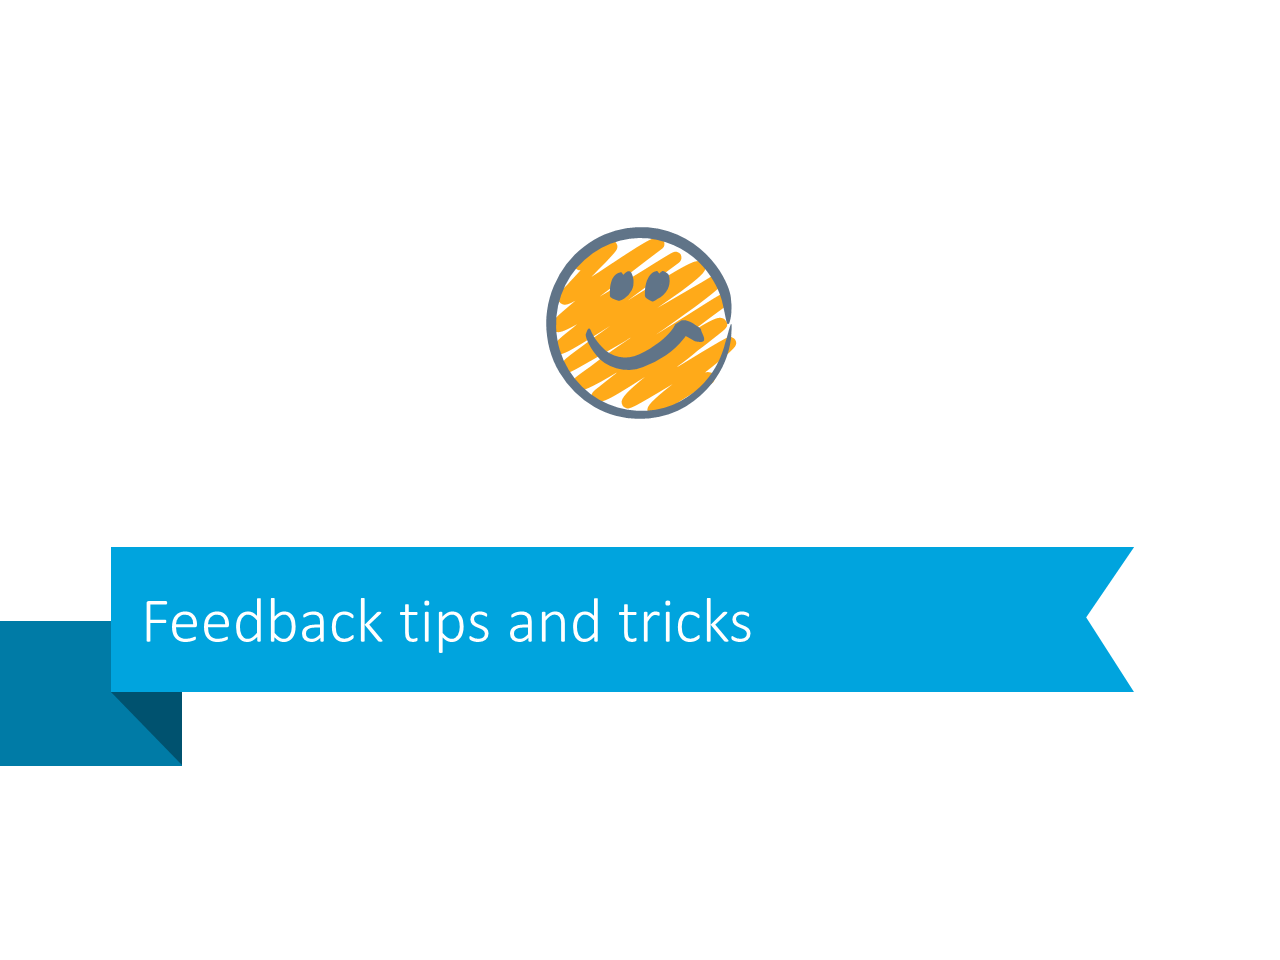 Tricks feedback tips powerpoint slide stripe